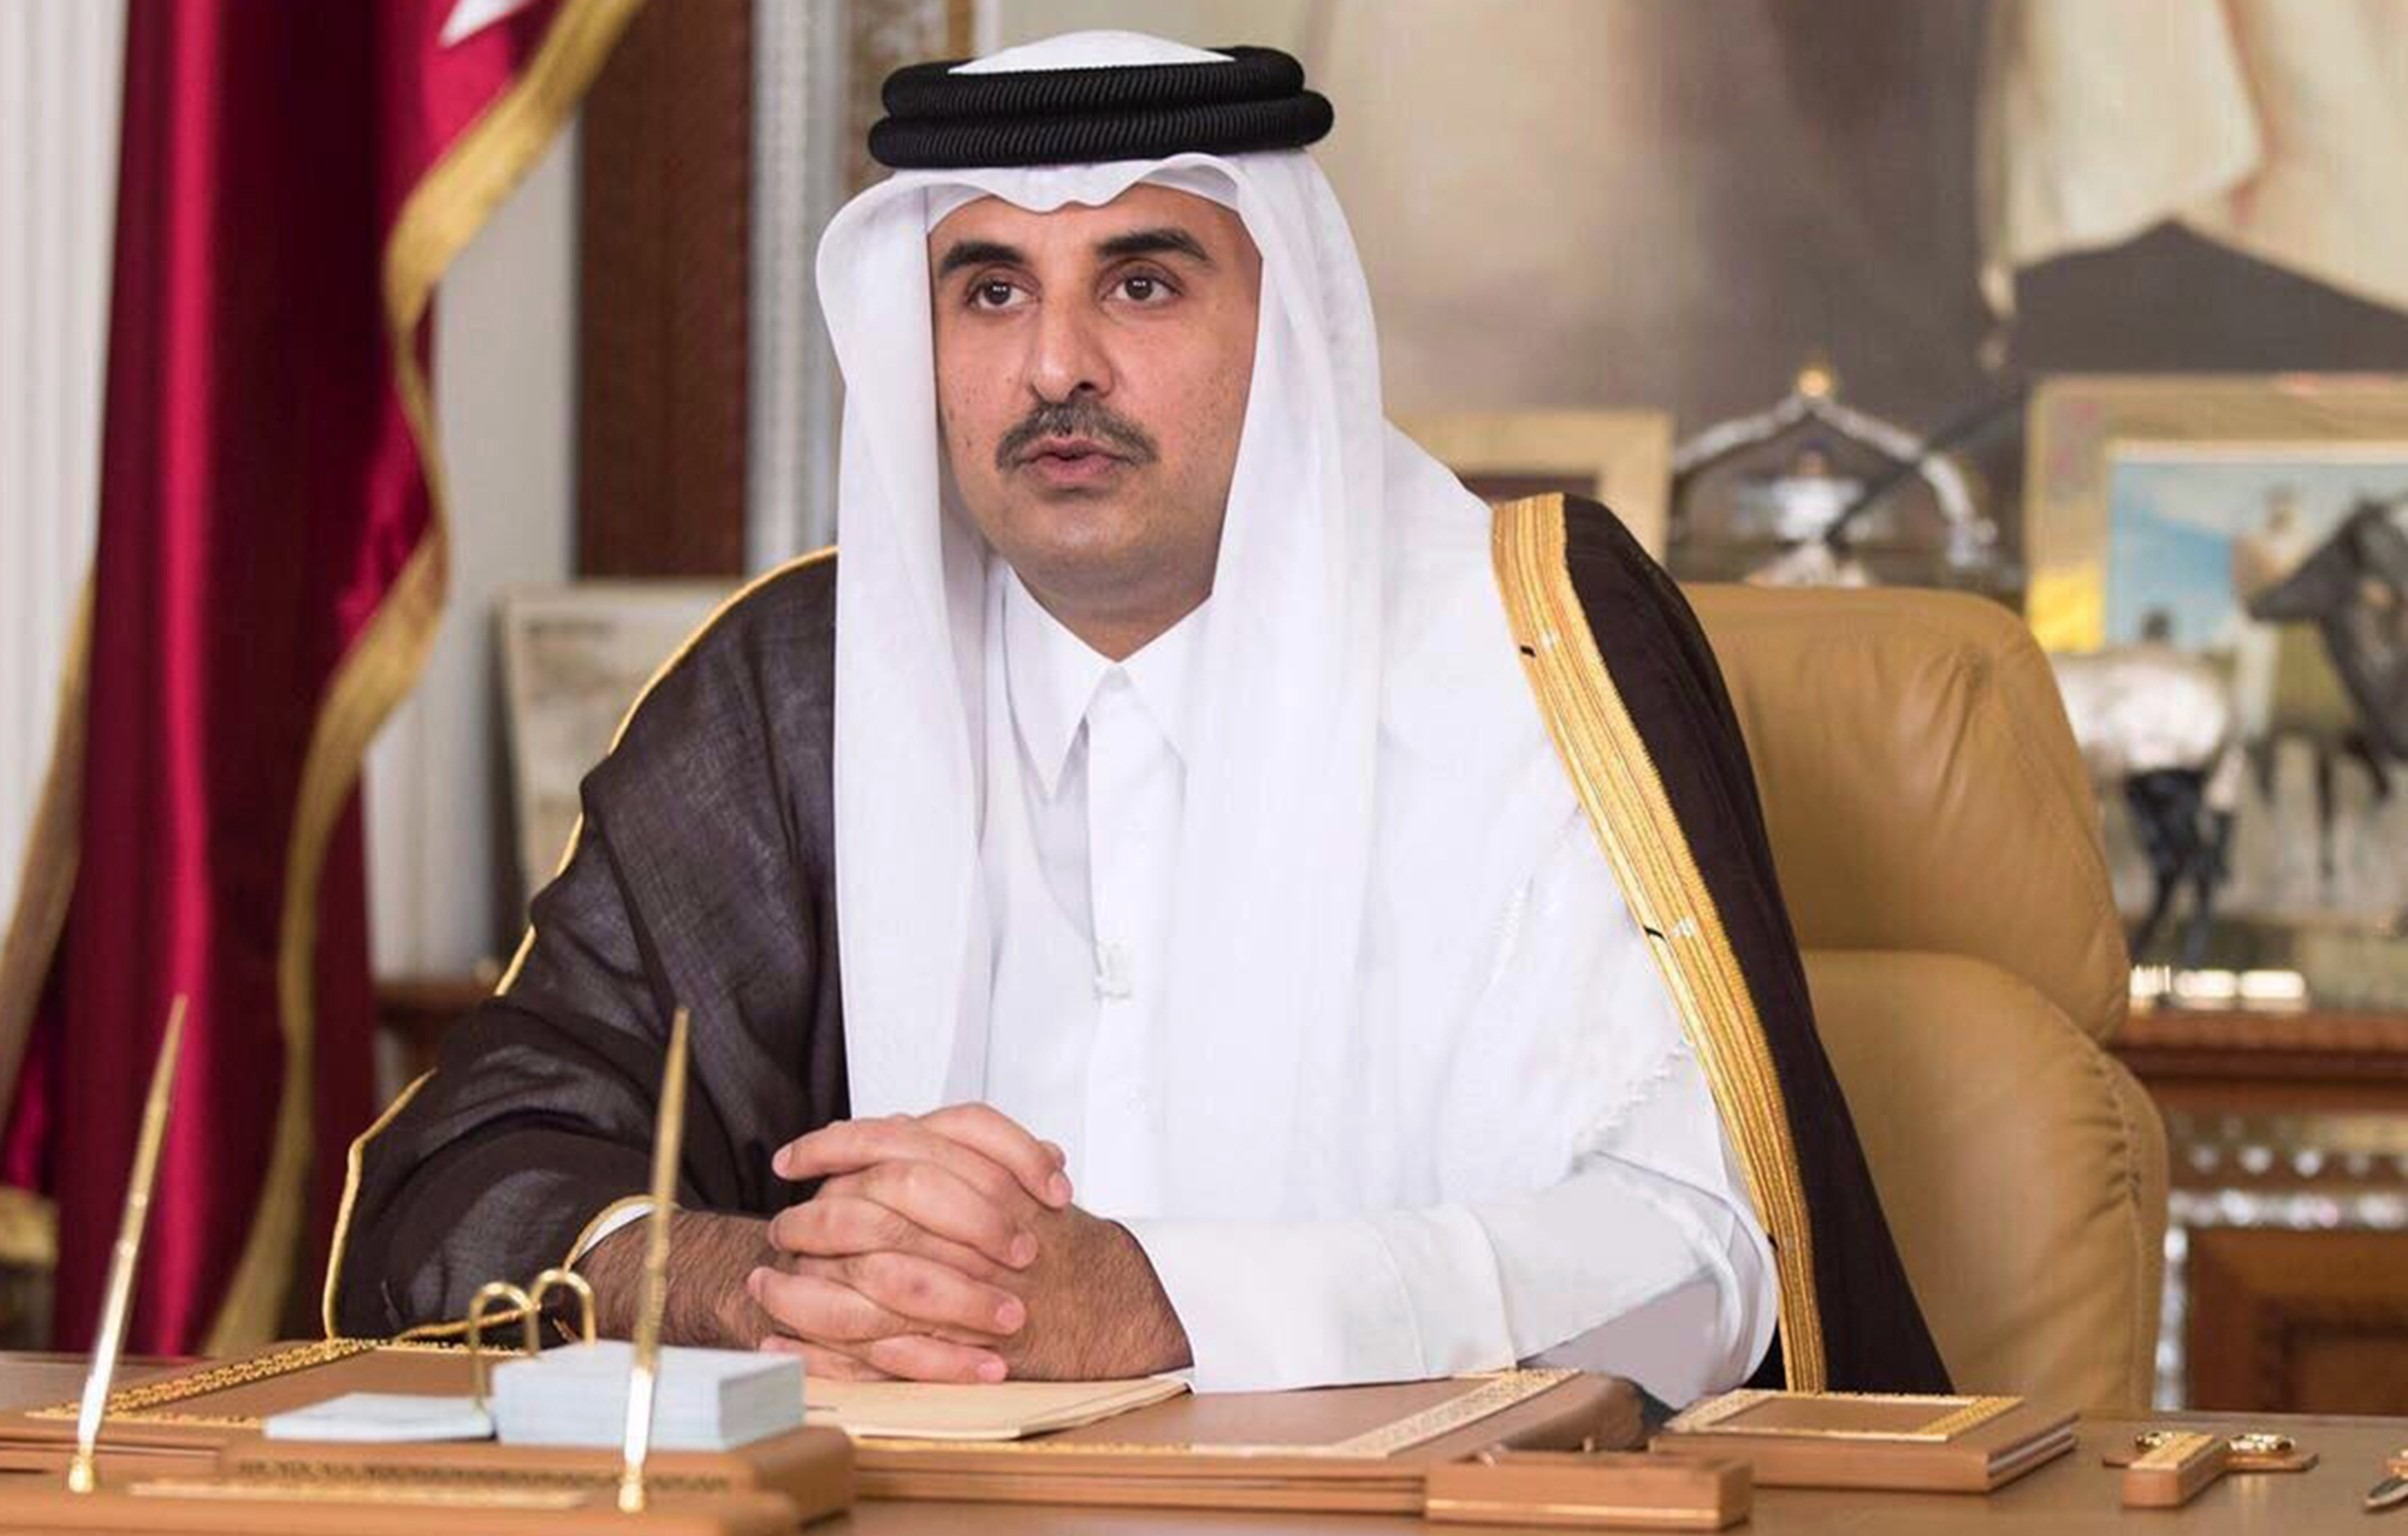 Top 10 Richest Royal Families In The World, heikh Tamim bin Hamad Al Thani